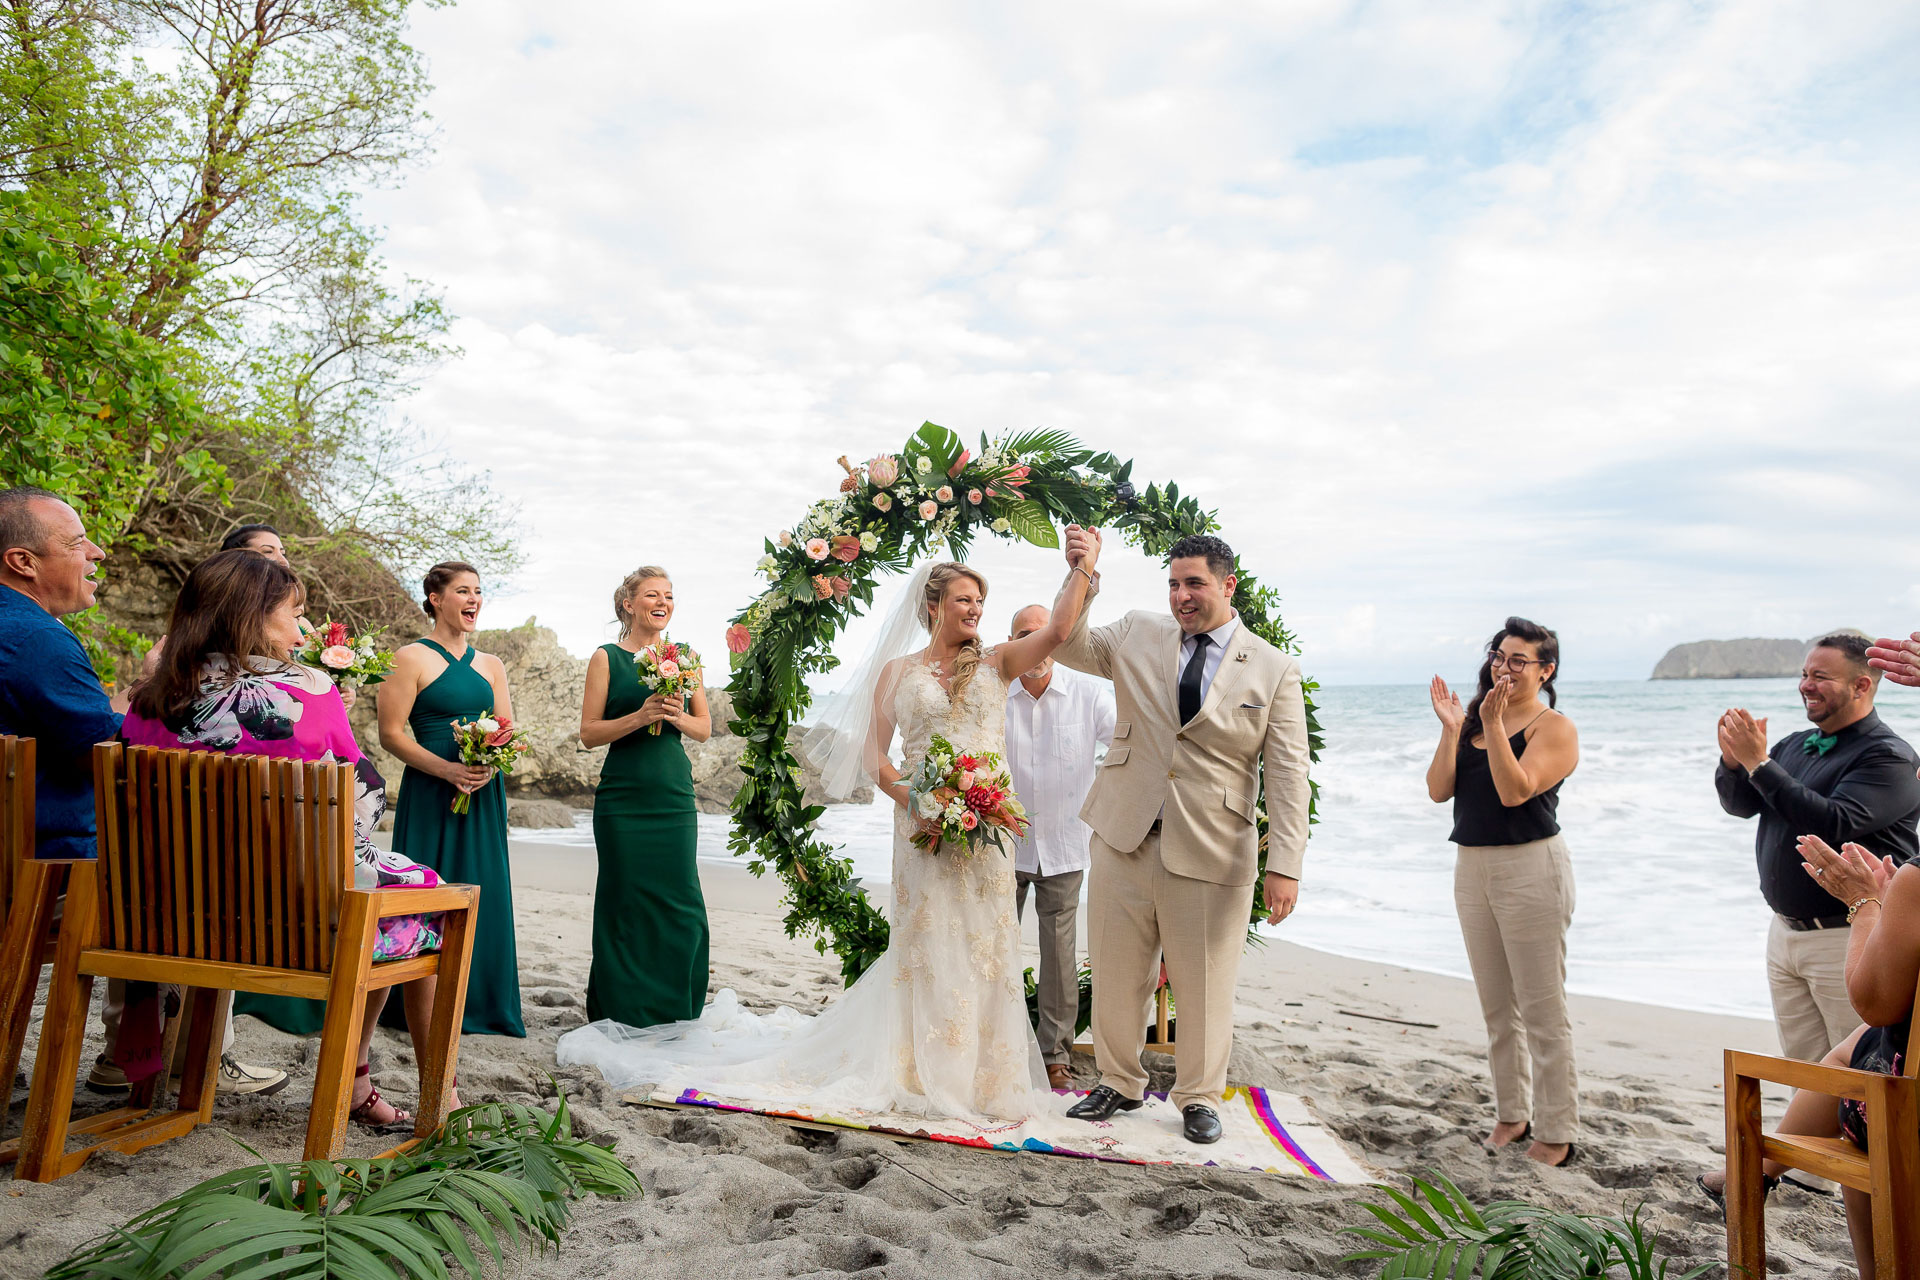 Beach elopement ceremony image - Costa Rica | As the beach ceremony ends, the newlyweds hold hands and raise them into the air